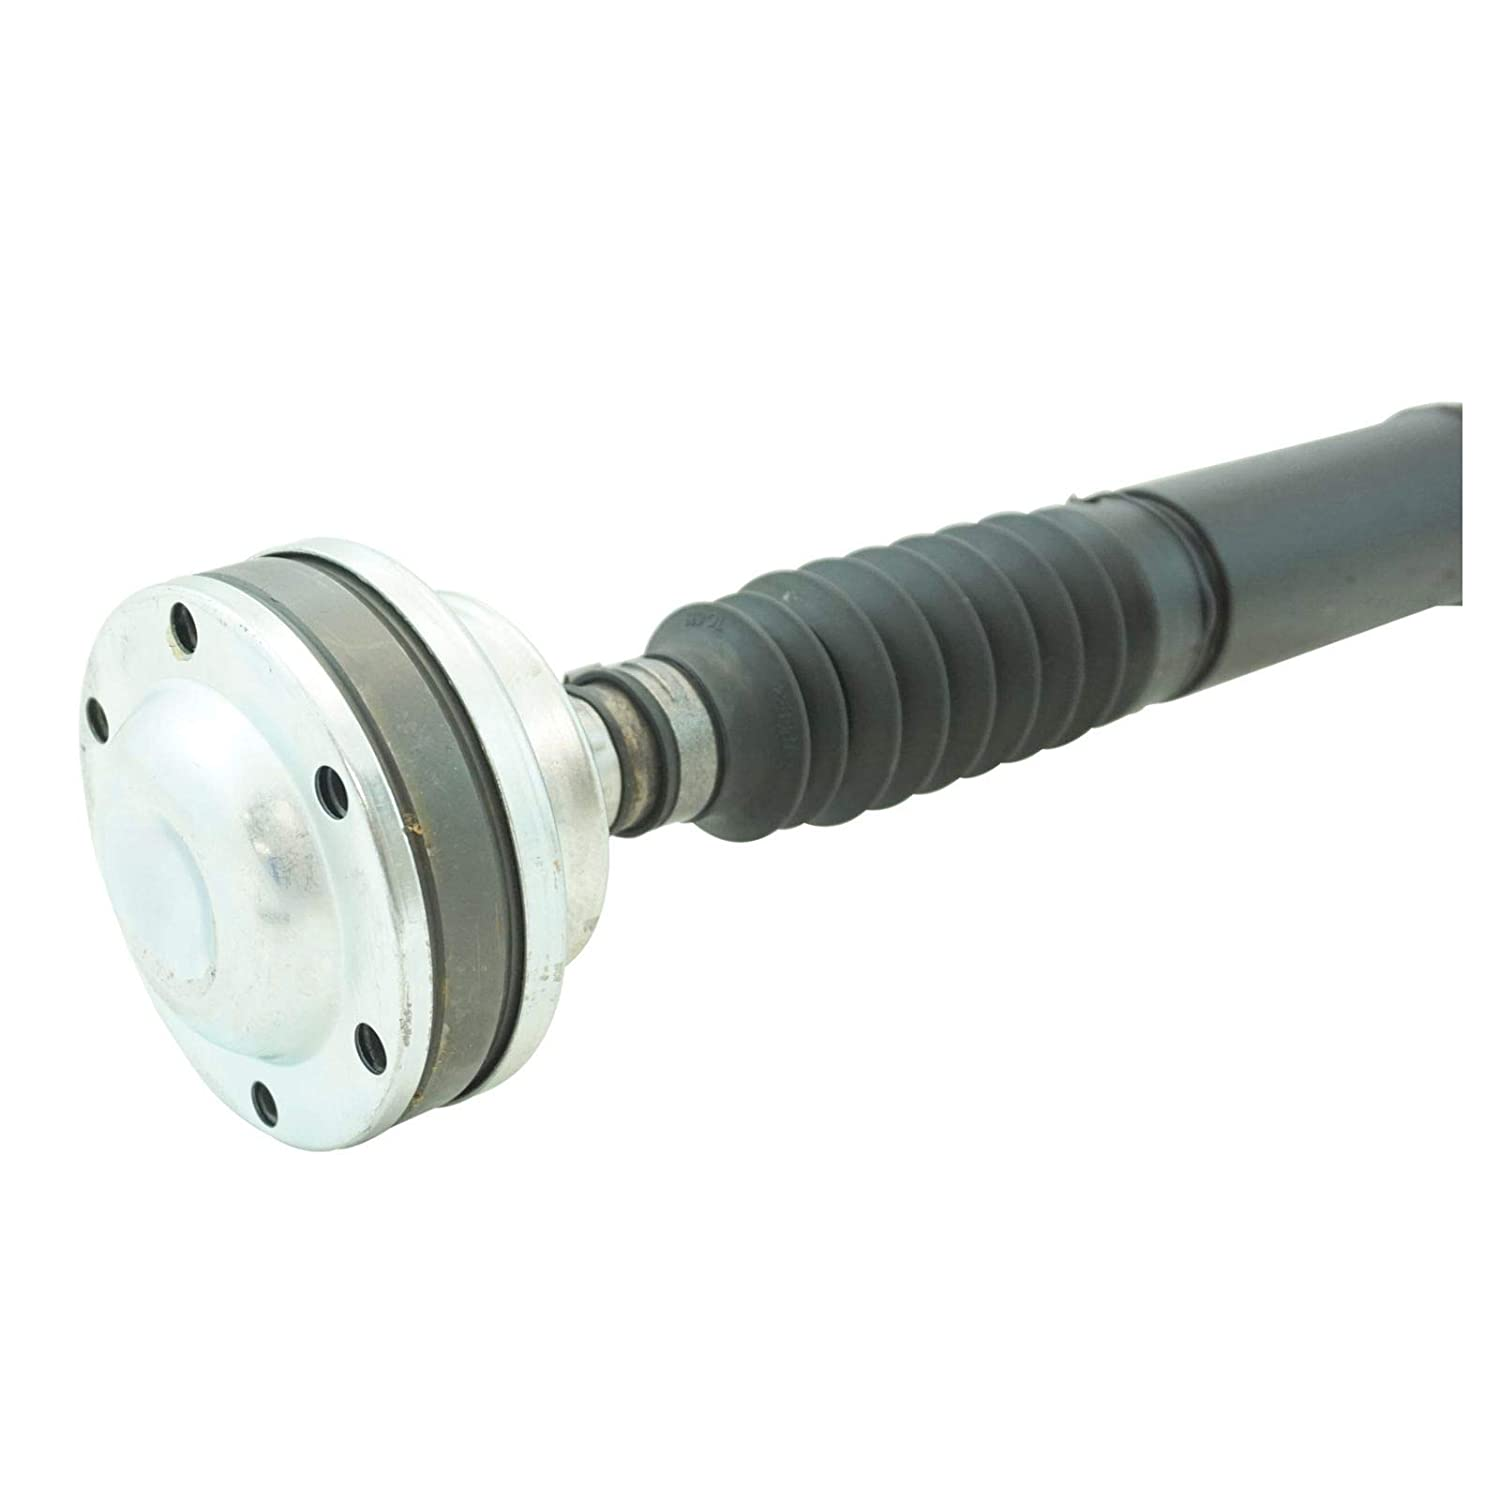 Replacement Parts Front Driveshaft for 2001-2007 Dodge Dakota 01 ...